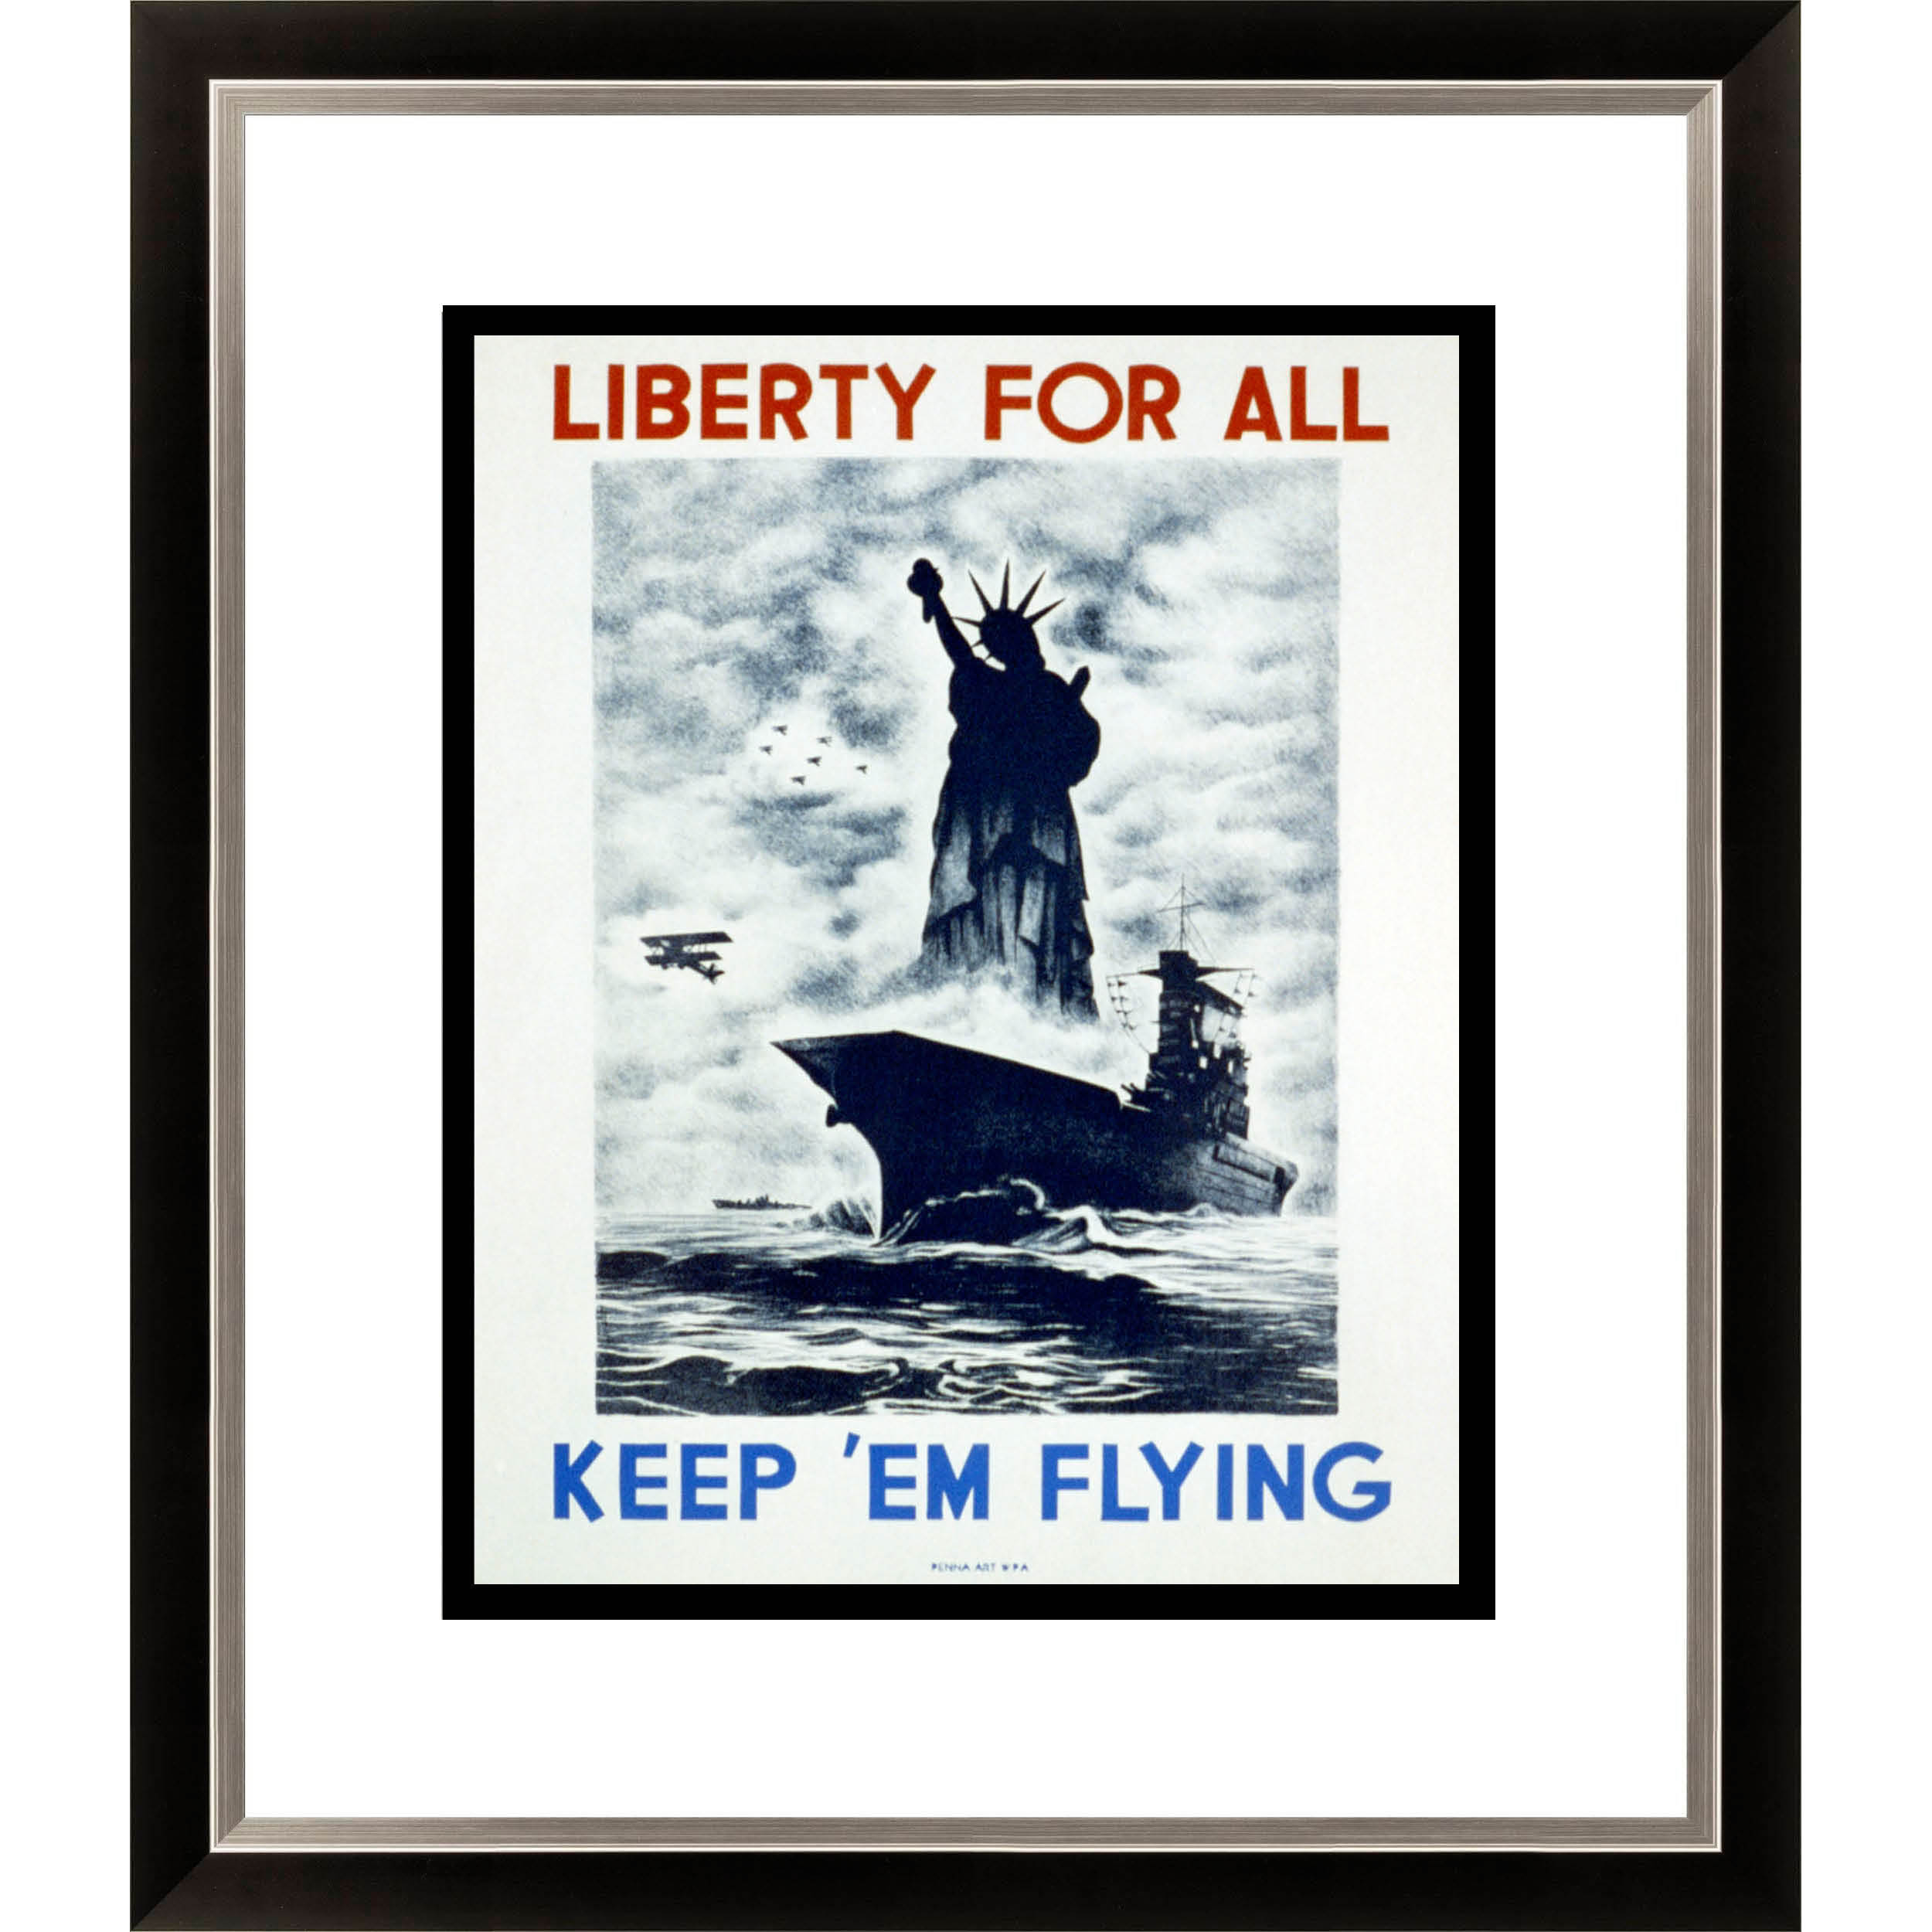 Liberty for All Framed Limited Edition Giclee Art